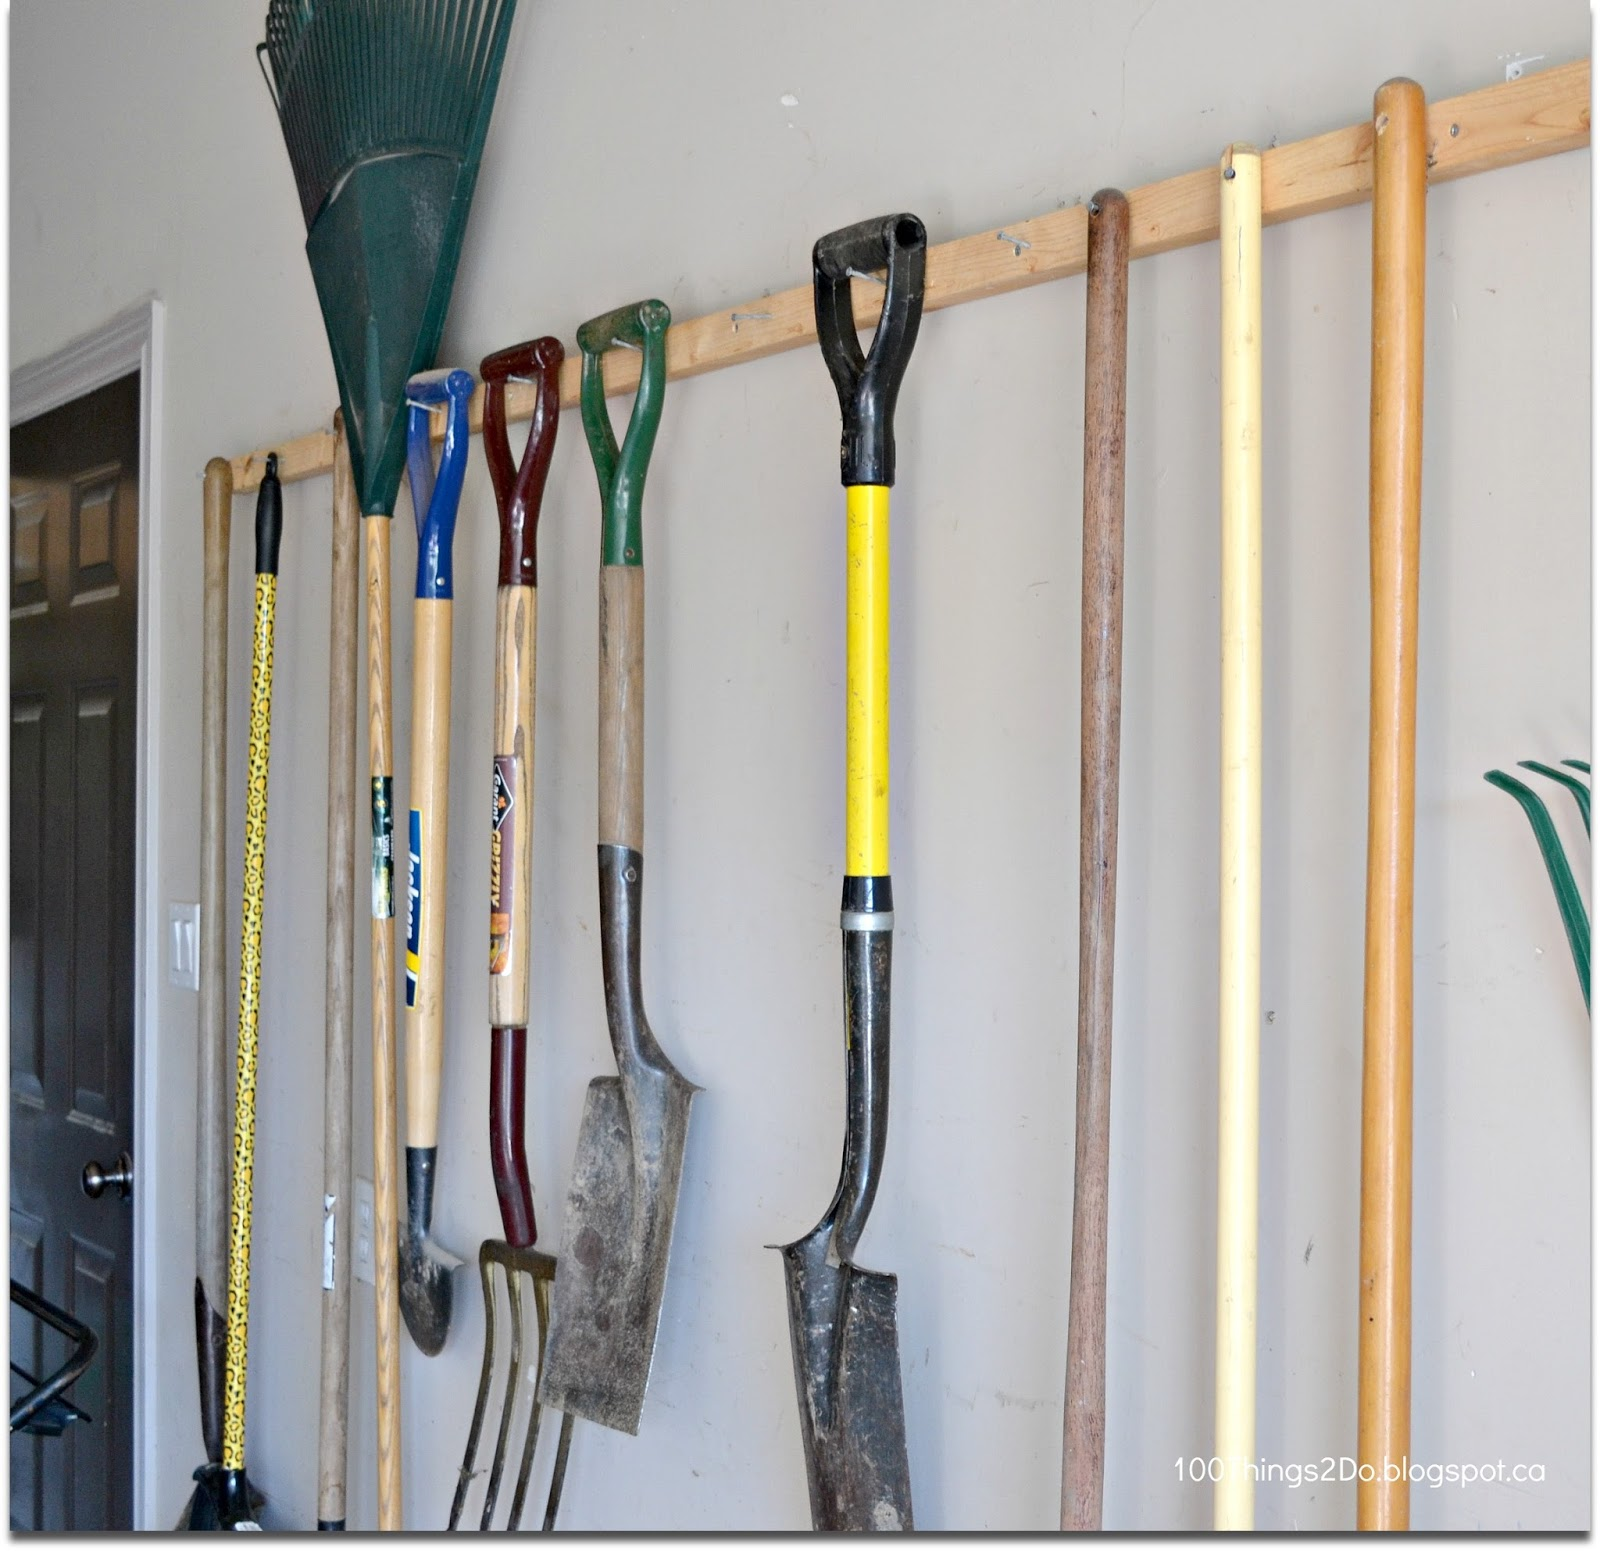 Exceptionnel Storing Garden Tools, Garden Tool Storage, Organizing Your Garden Tools, Garden  Tool Rack \